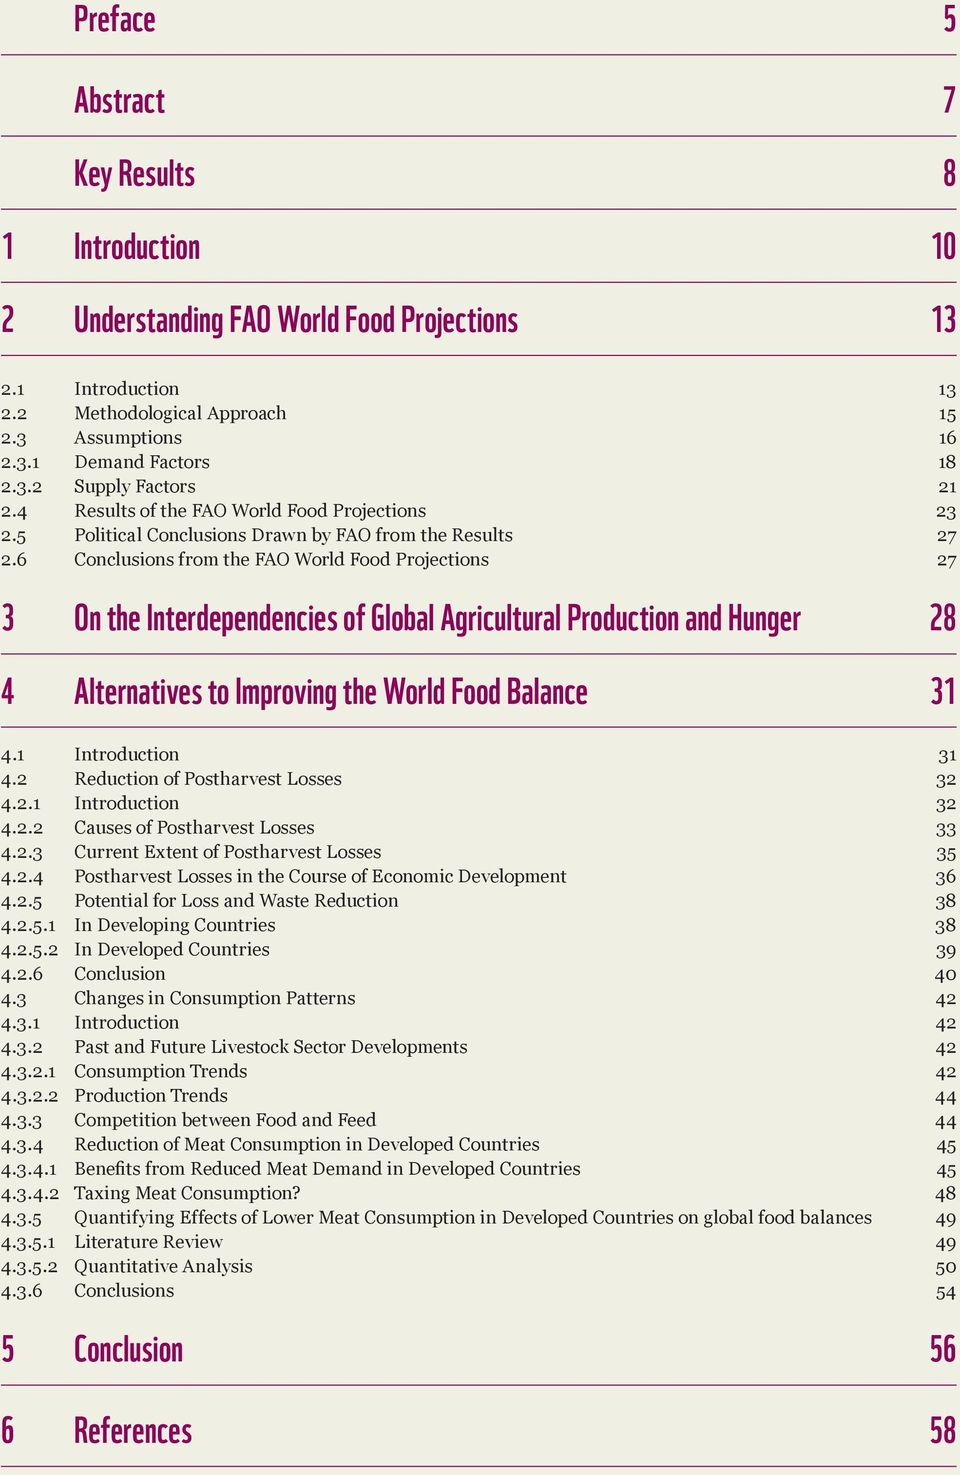 6 Conclusions from the FAO World Food Projections 27 3 on the Interdependencies of Global Agricultural Production and Hunger 28 4 alternatives to Improving the World Food Balance 31 4.